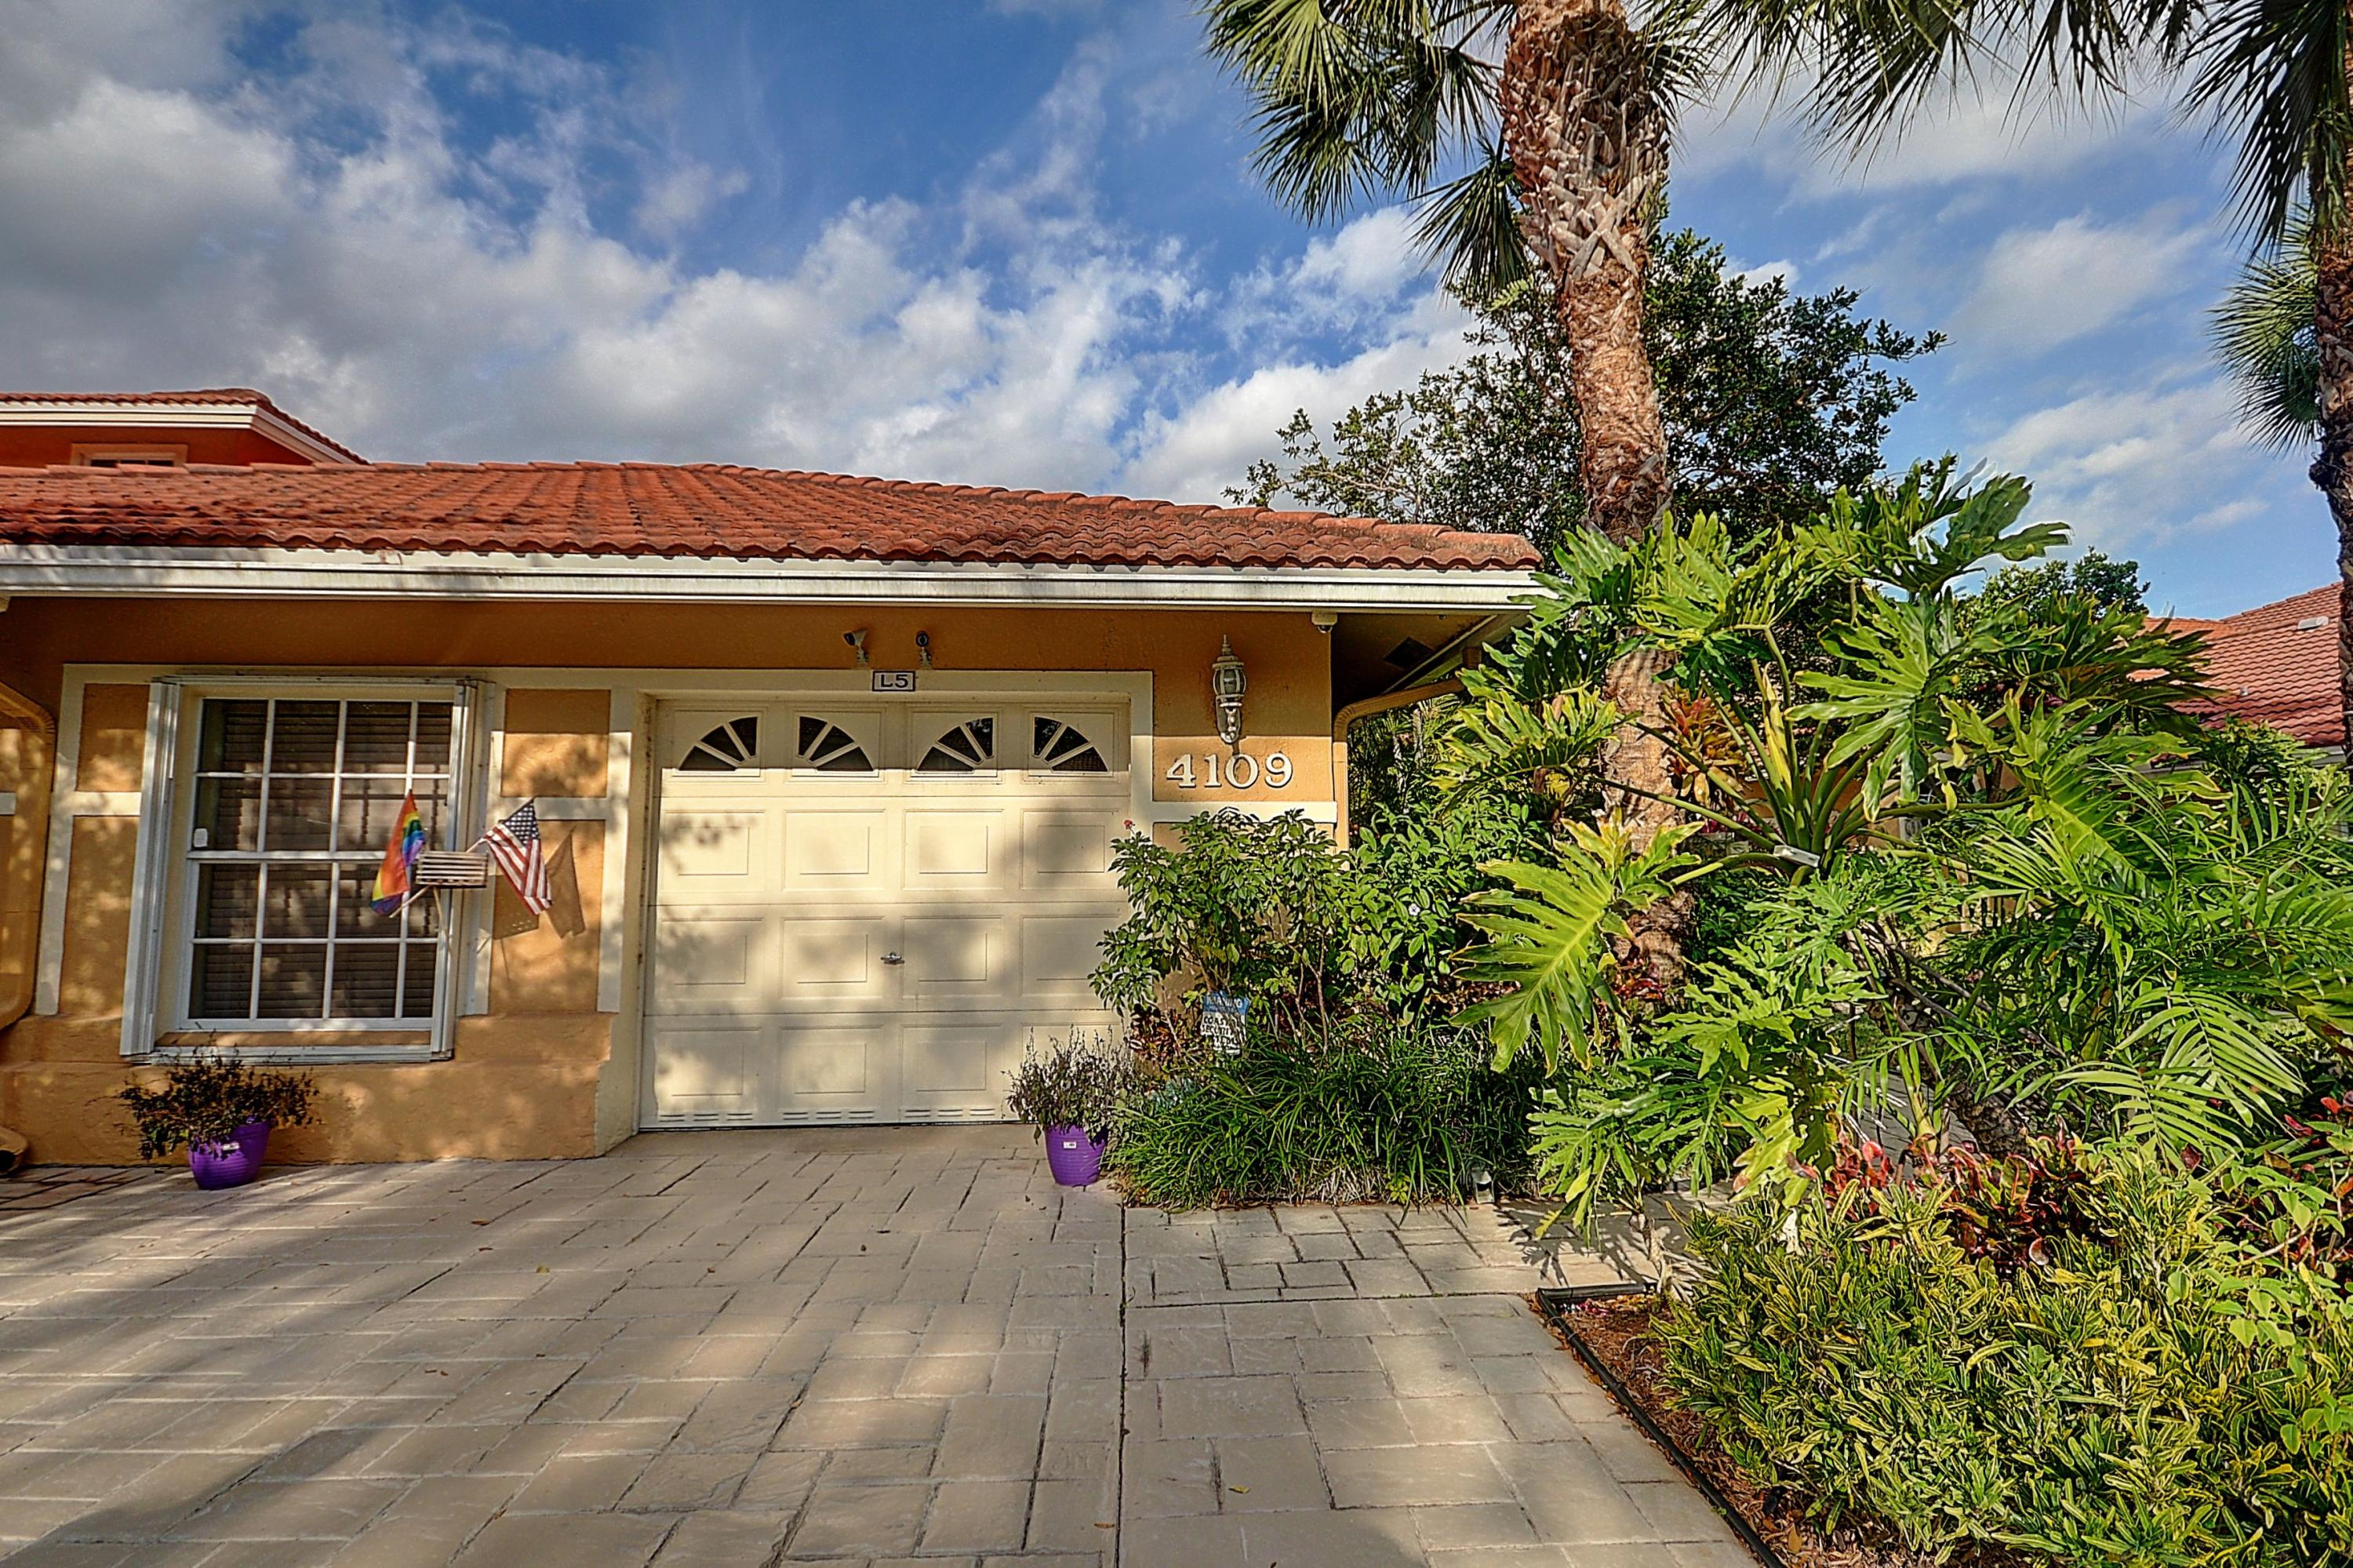 4109 Carriage Drive, Pompano Beach, Florida 33069, 3 Bedrooms Bedrooms, ,4 BathroomsBathrooms,Townhouse,For Sale,Carriage,1,RX-10495021